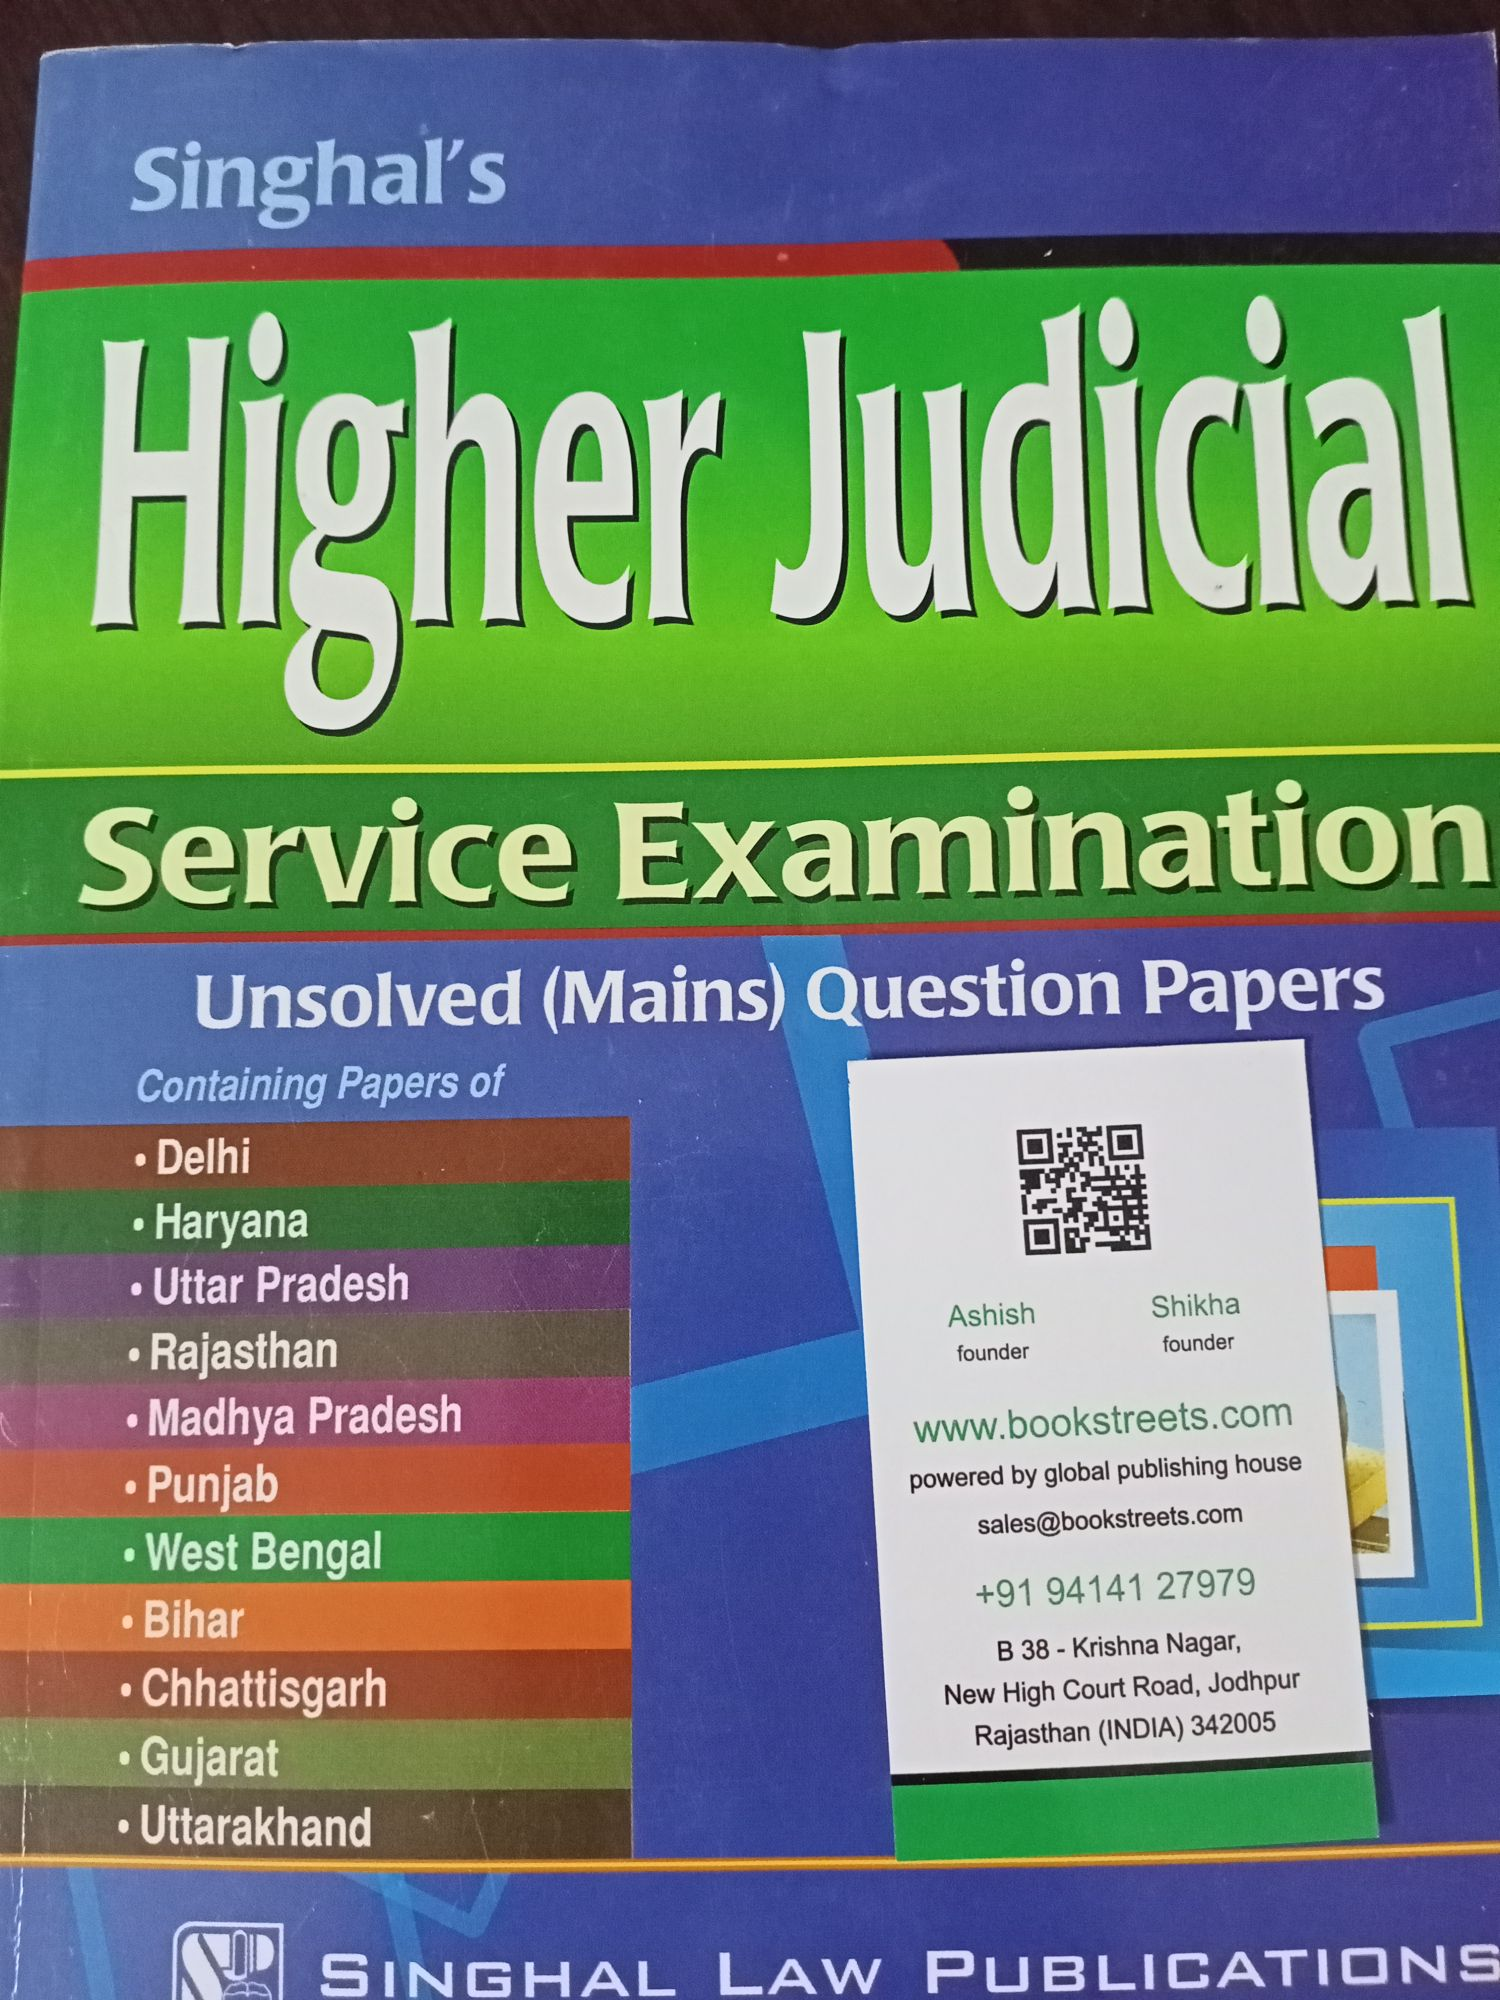 Singhal Higher Judicial Service Examination Unsolved (Mains) Question Paper